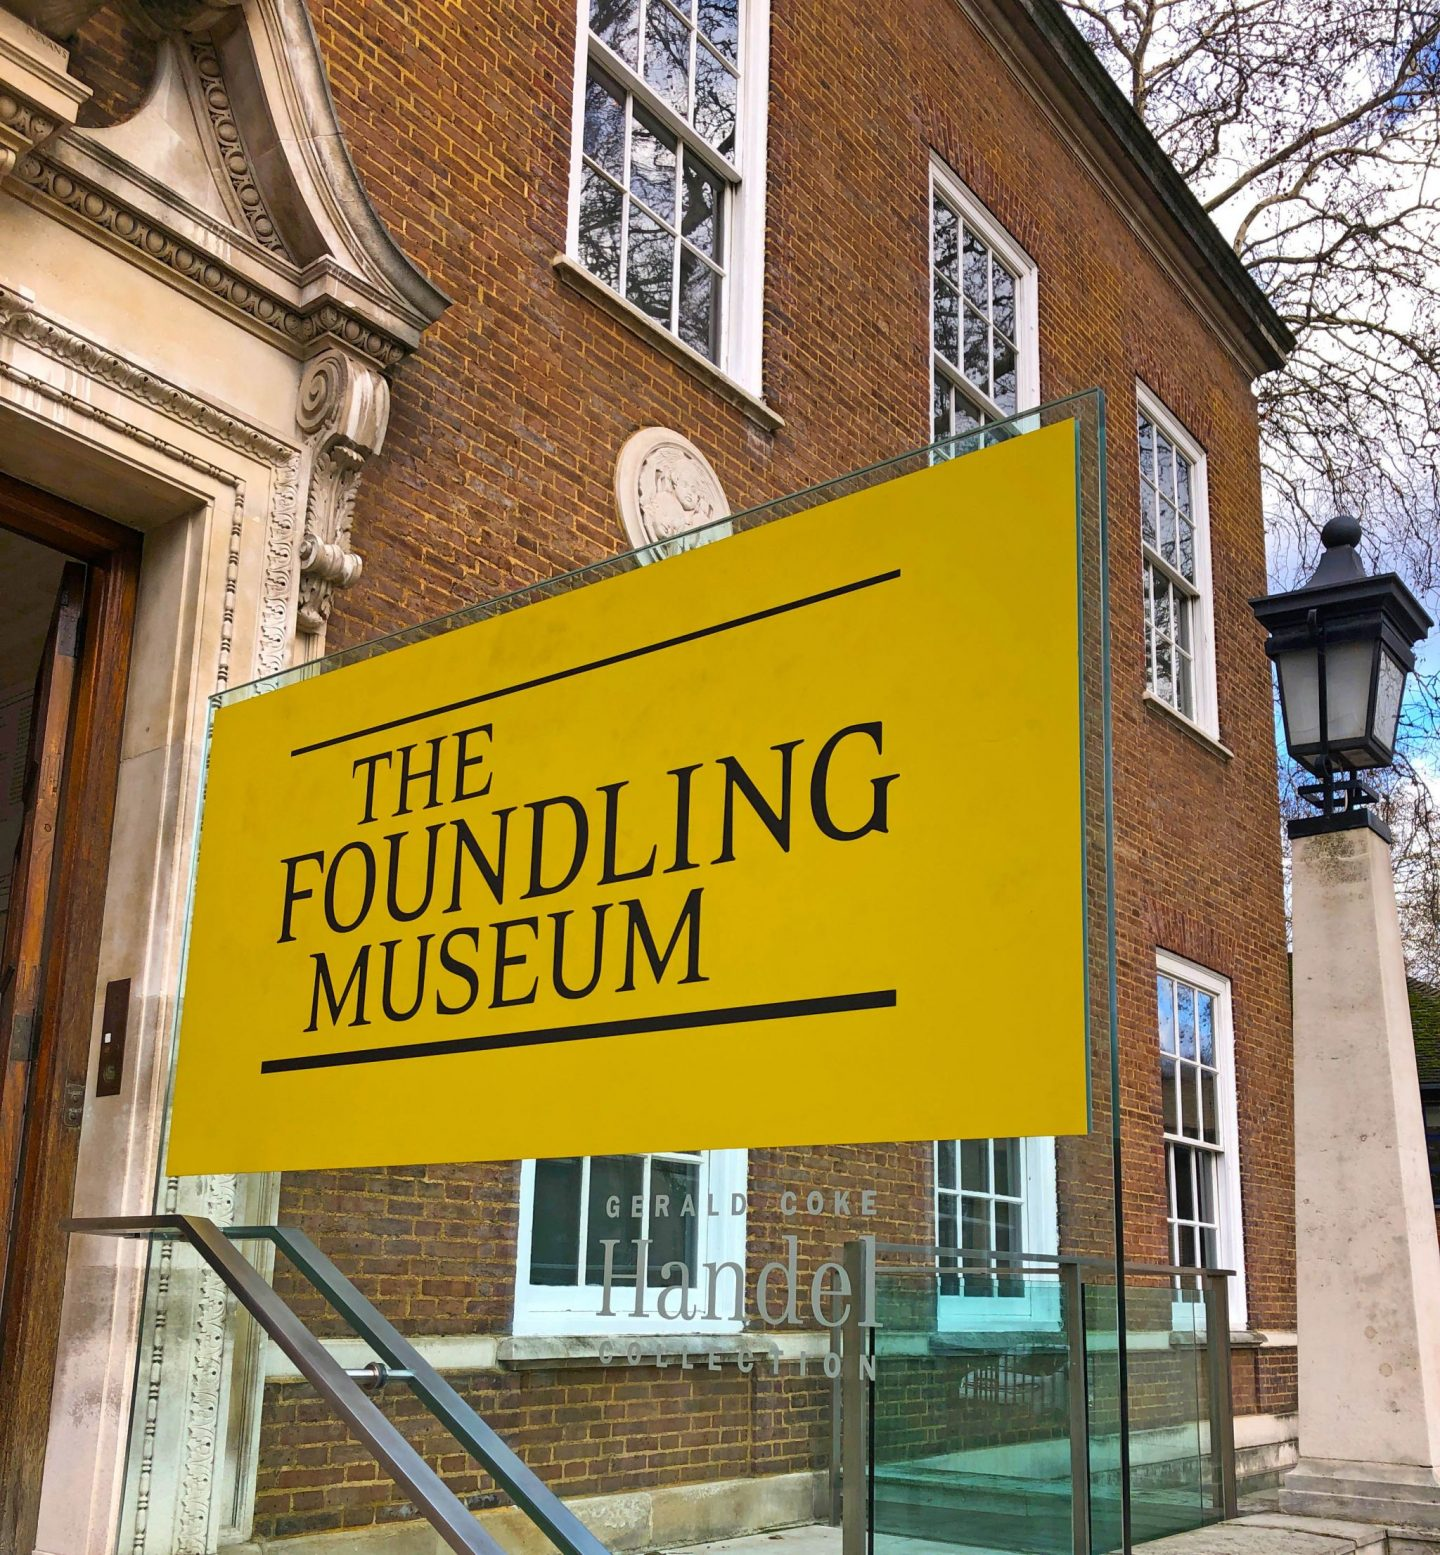 The Foundling Museum, Foundling Museum, Bedrooms of London, poverty, London, poverty in London, austerity, dadbloguk, dadbloguk.com, dad blog uk, The Childhood Trust